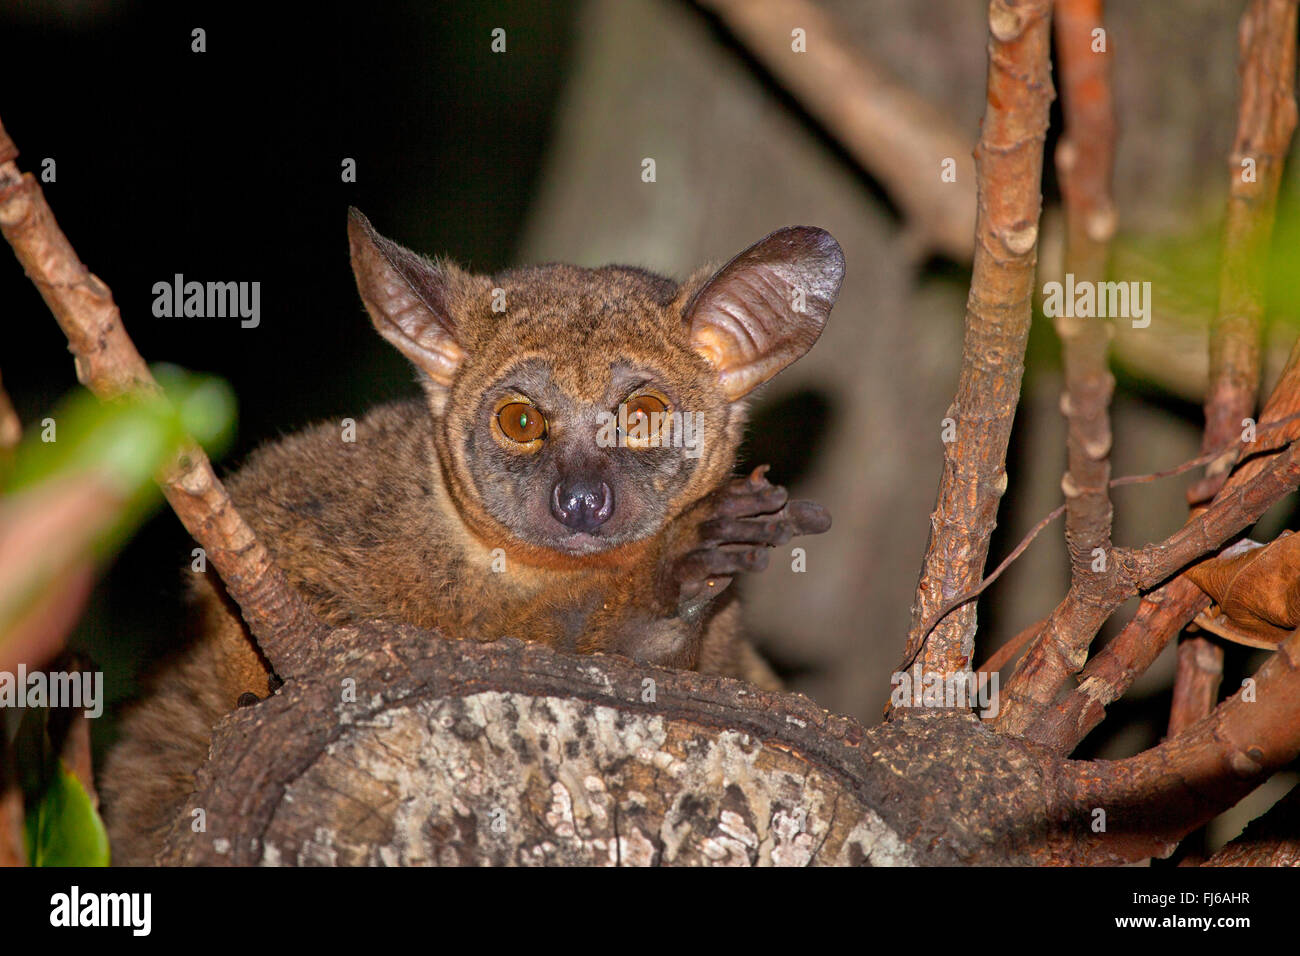 Senegal bush baby, lesser bush baby, Senegal galago (Galago senegalensis), sitting on a branch, in the evening, - Stock Image